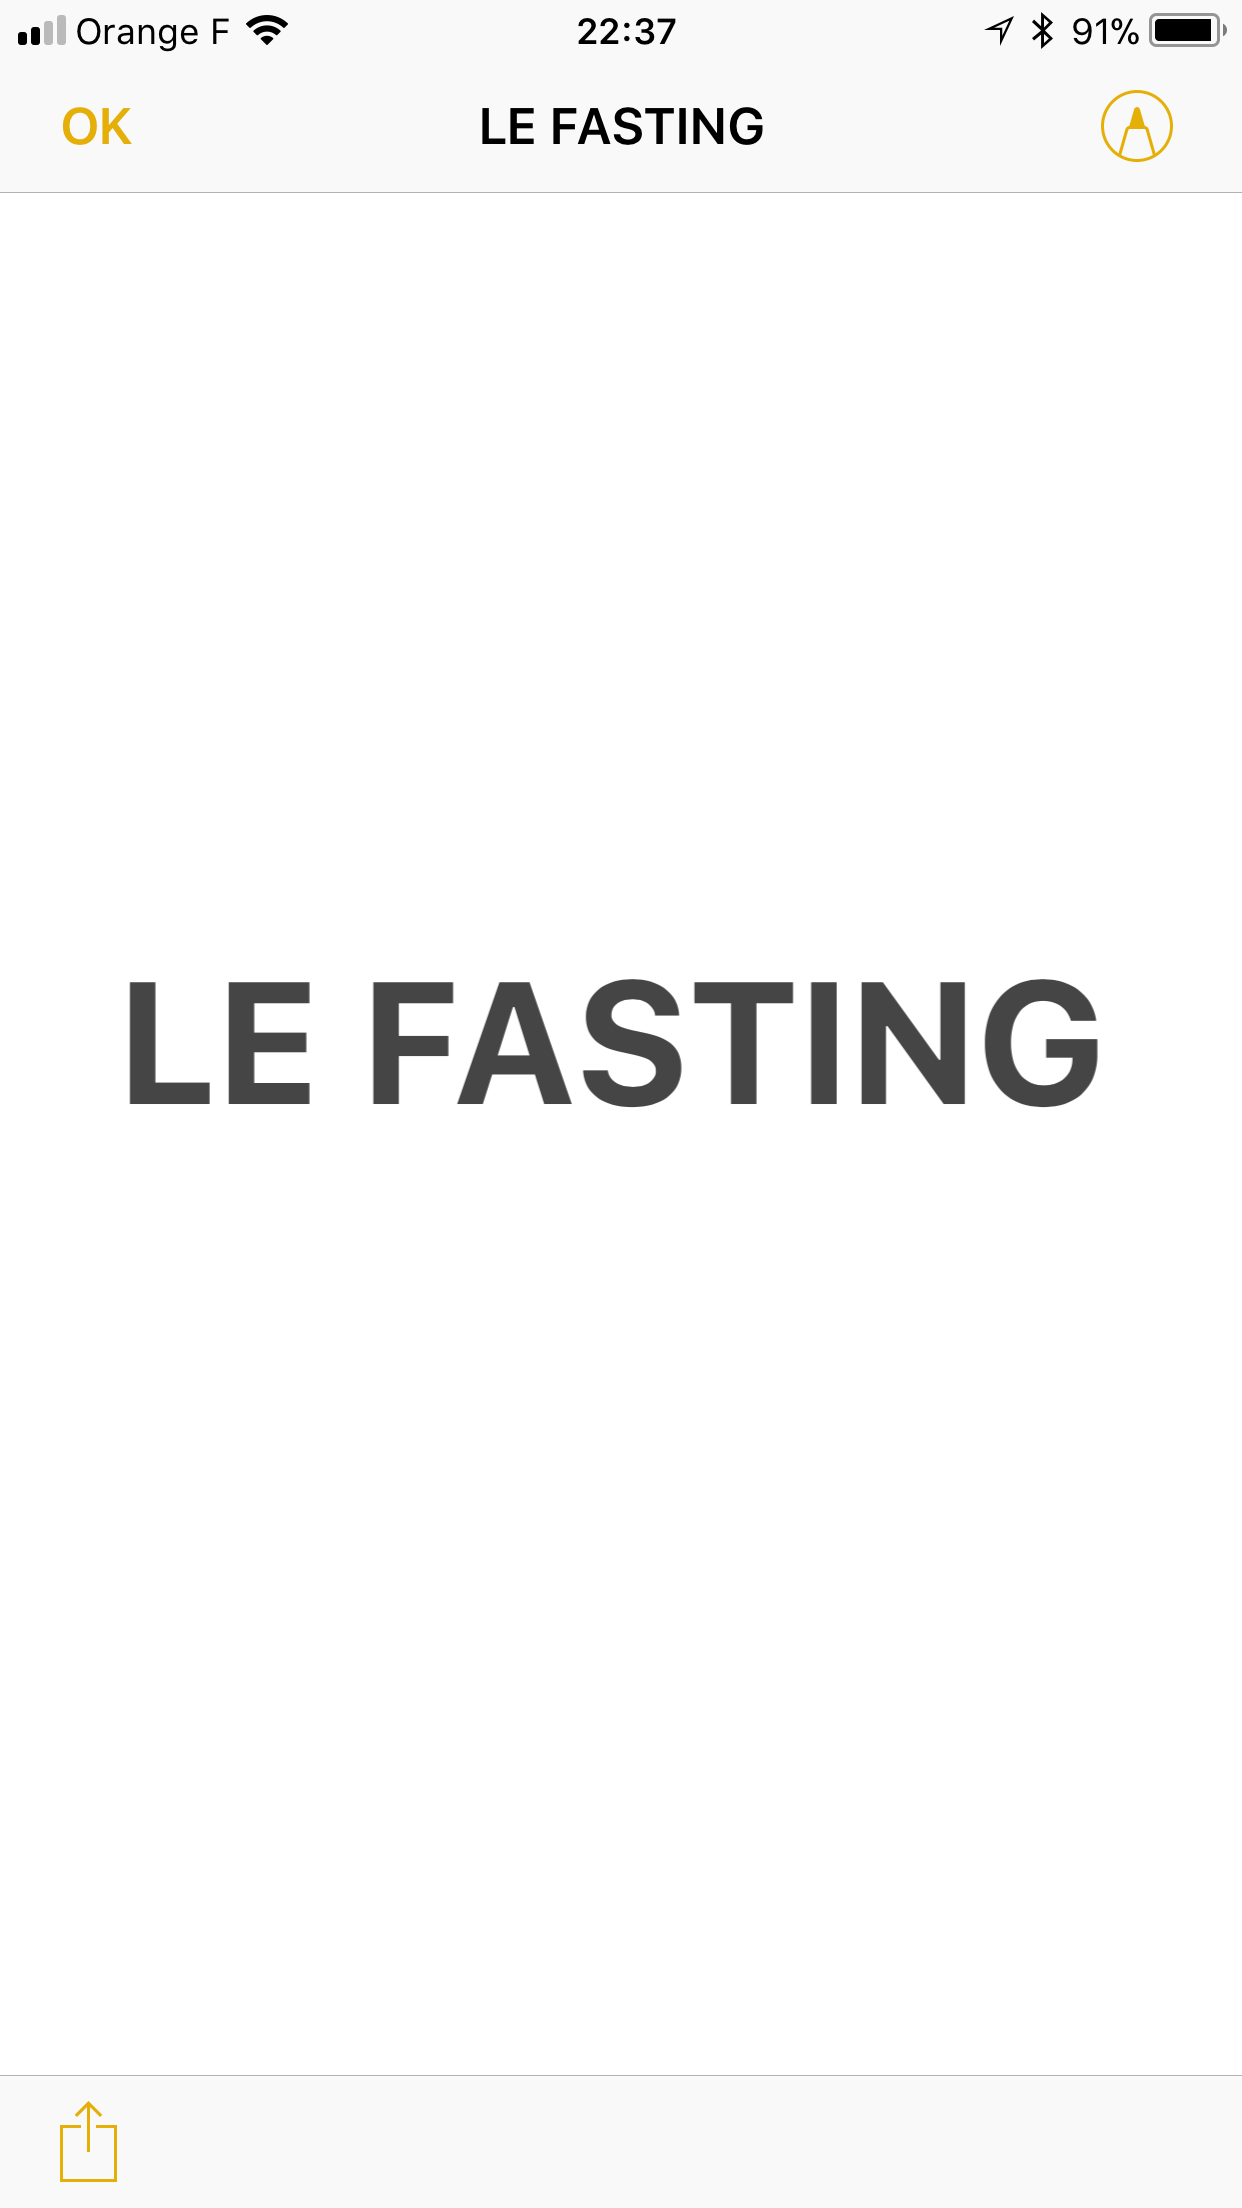 Fasting and Furious image